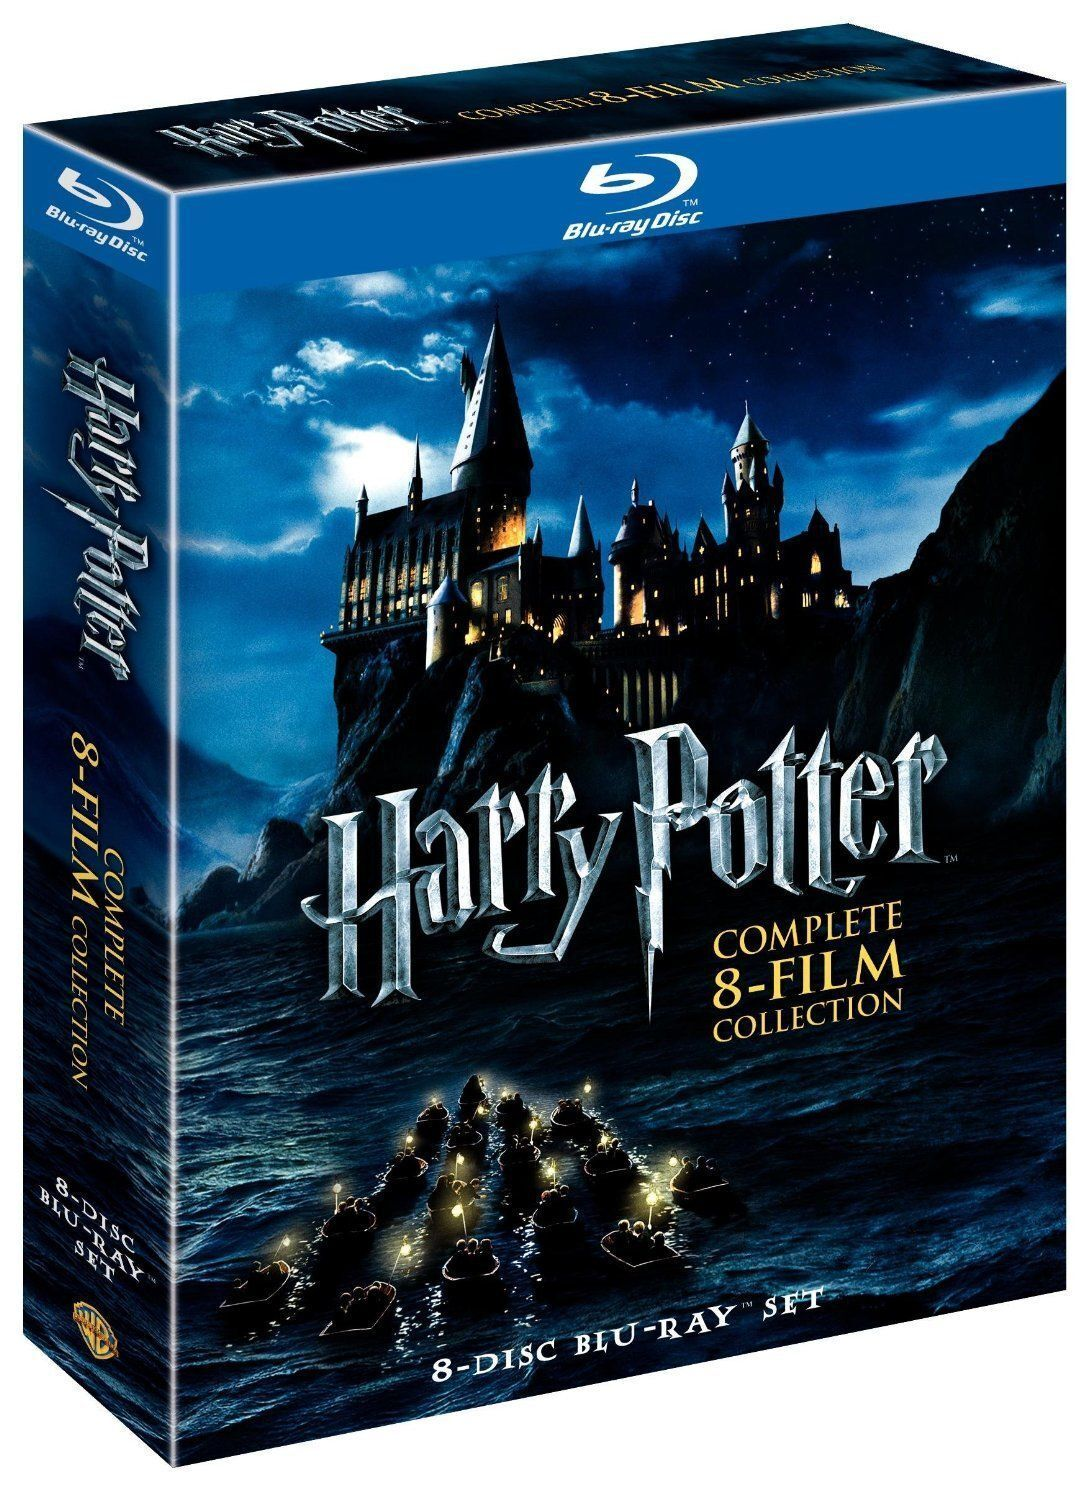 Harry Potter Complete (Blu-ray 8-Disc Set)